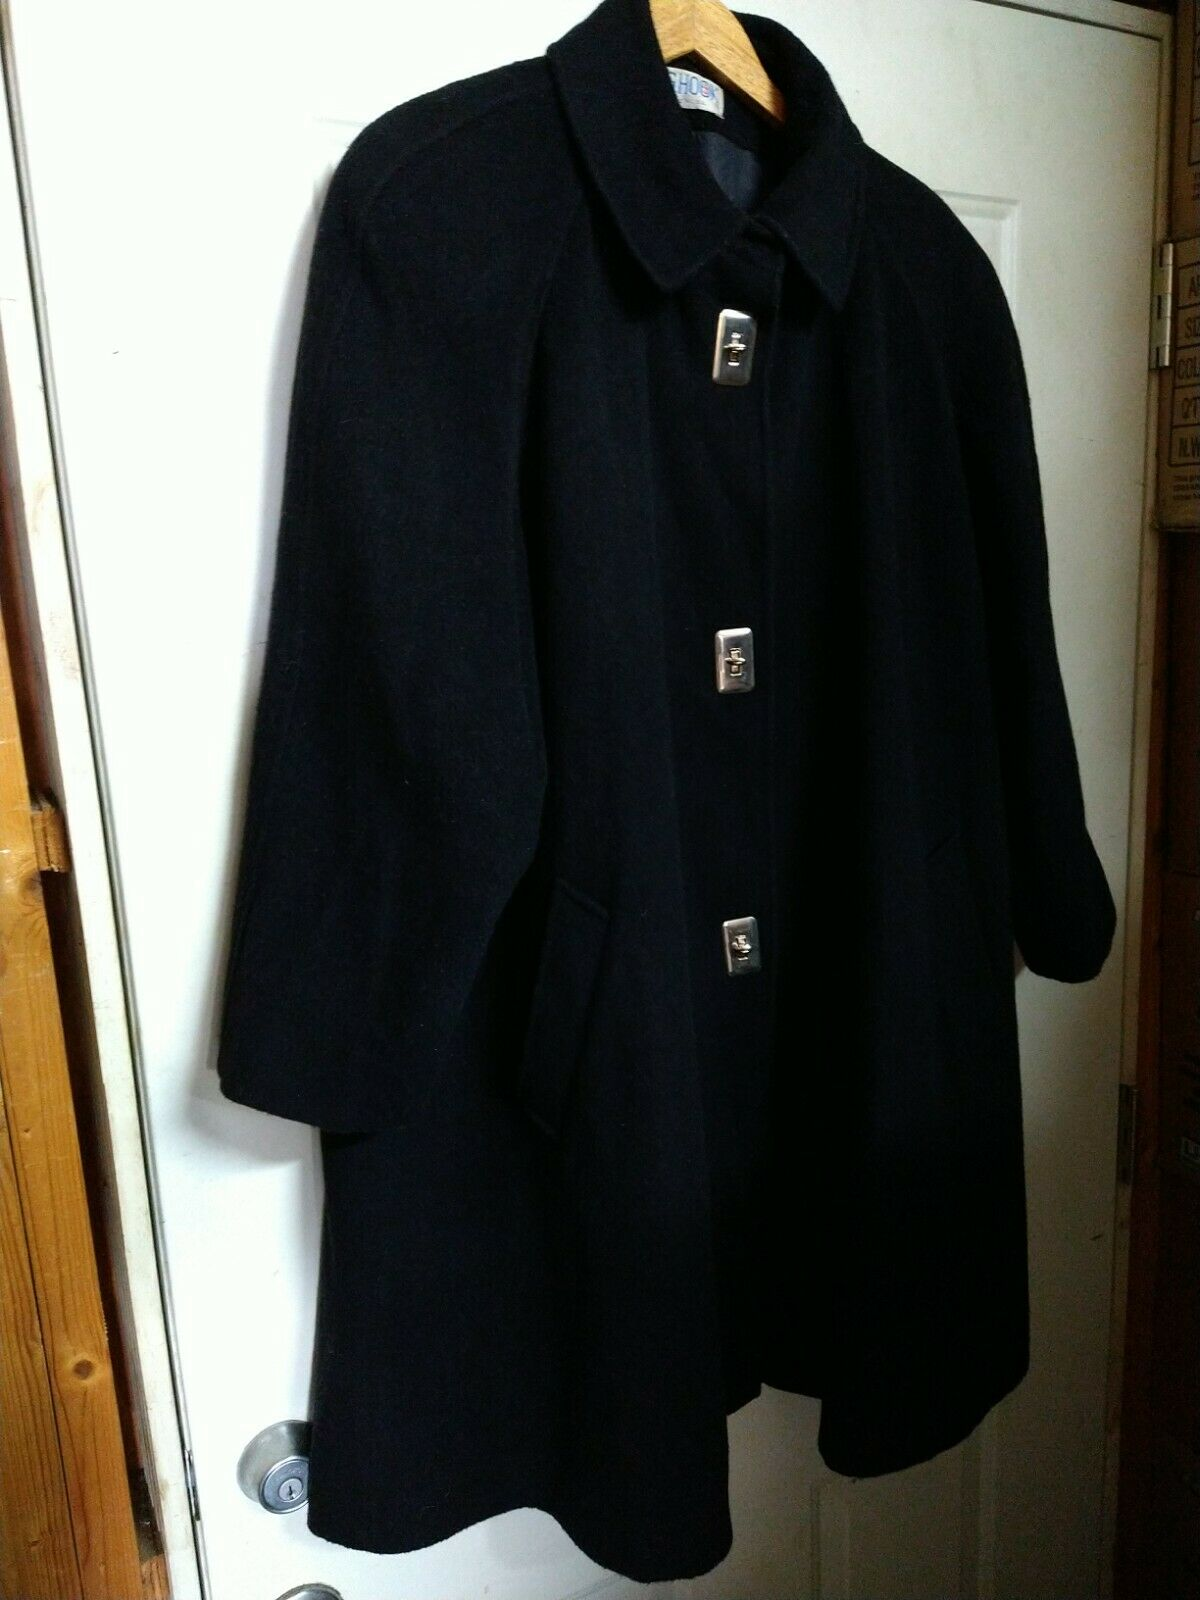 Vintage JG Hook Winter Wool Cashmere Exposed Stitching Coat Womens 12 Black 1980s 1990s Full Button Up